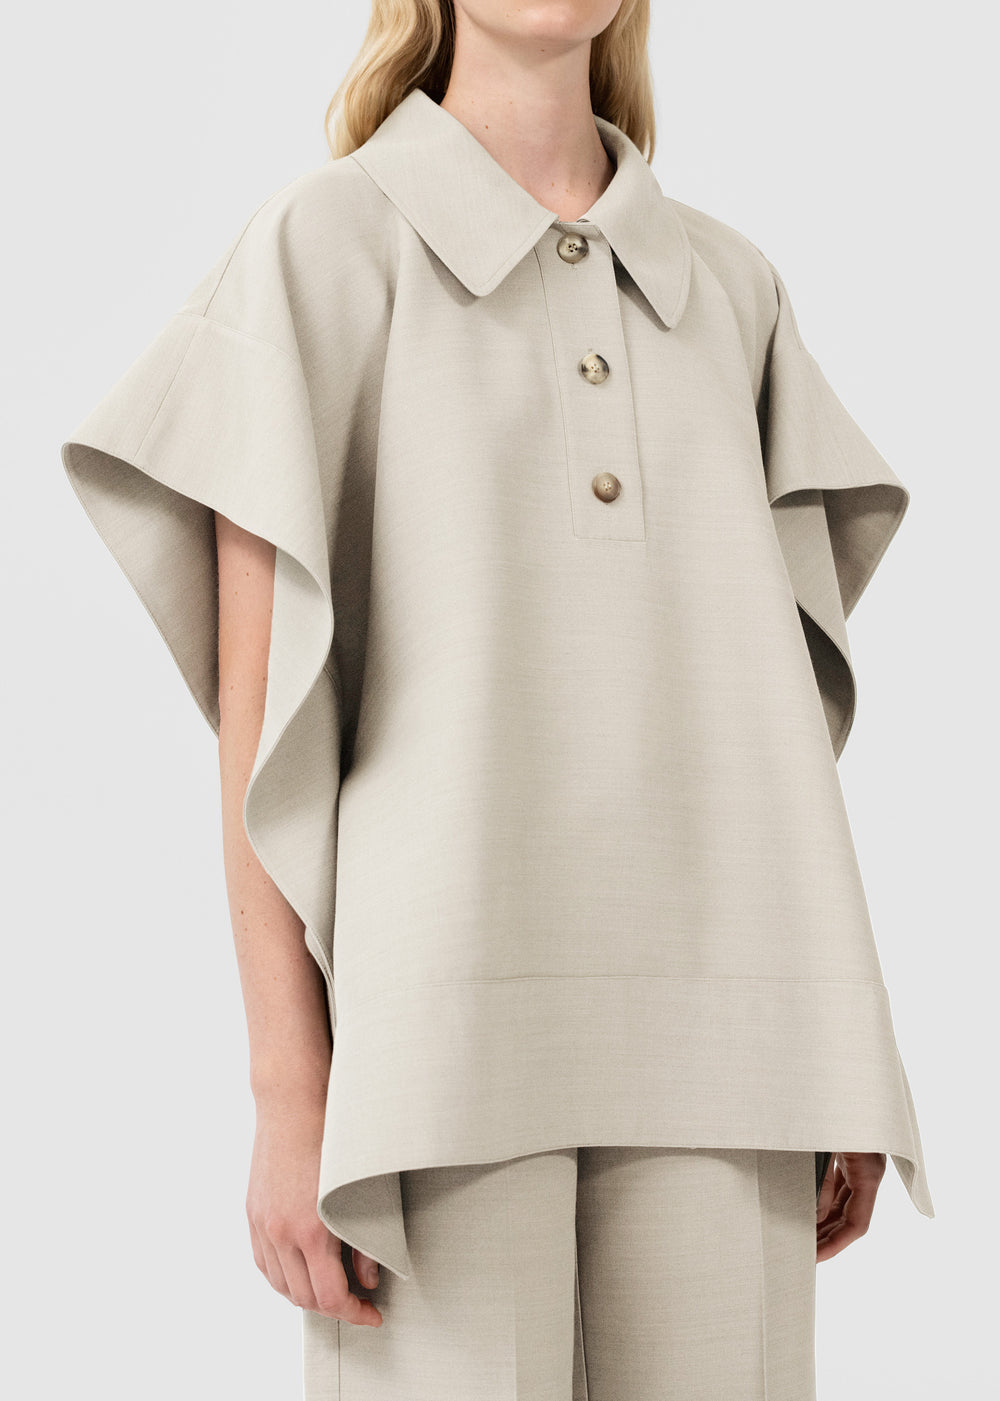 Flounce Hem Polo In Viscose Wool - Taupe in Ivory by Co Collections